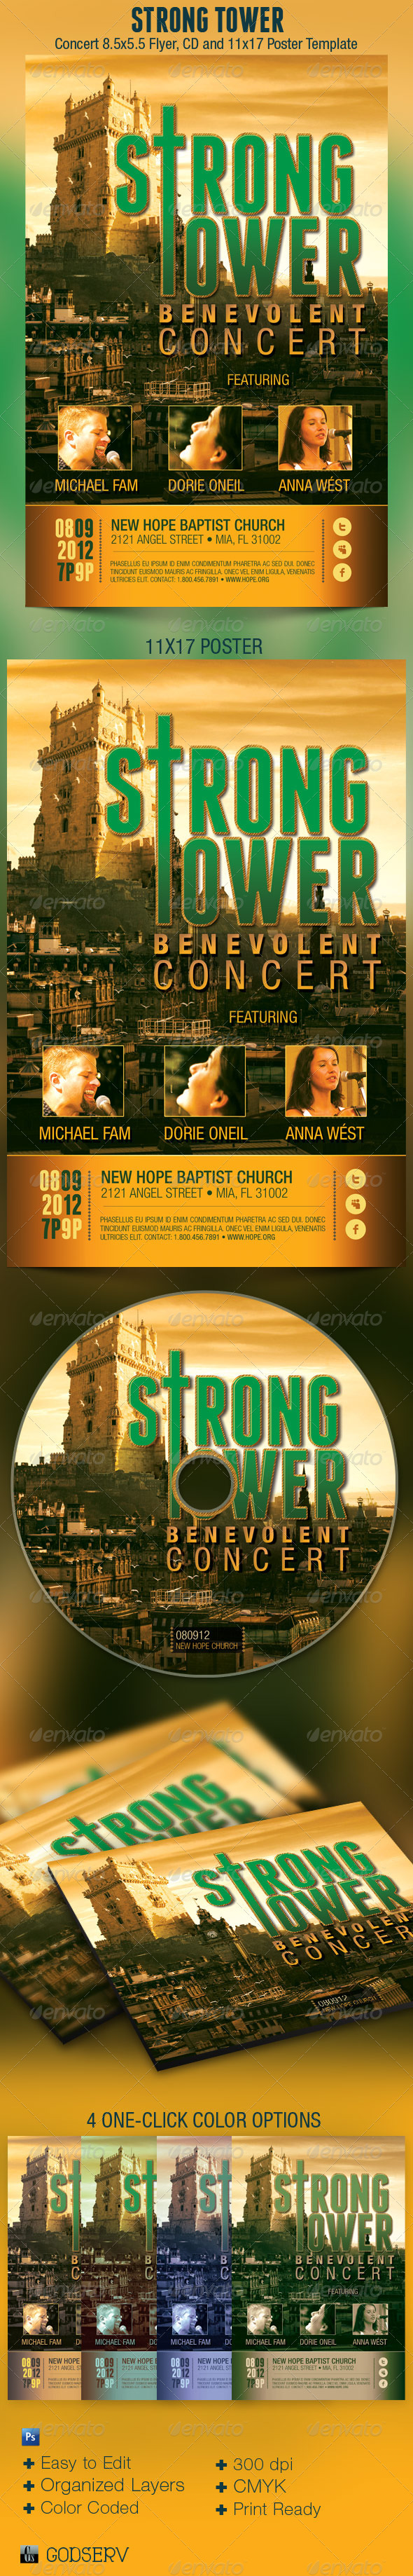 Strong Tower Church Flyer Poster CD Template - Church Flyers